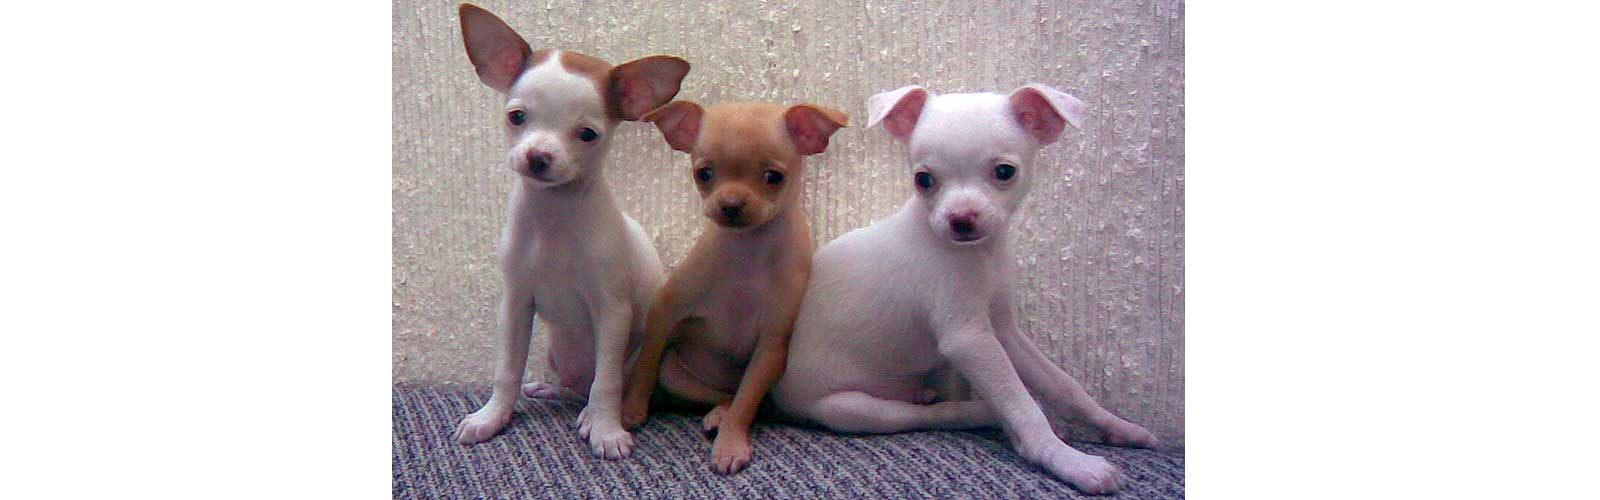 Photo of three Chihuahua dogs sitting side by side.